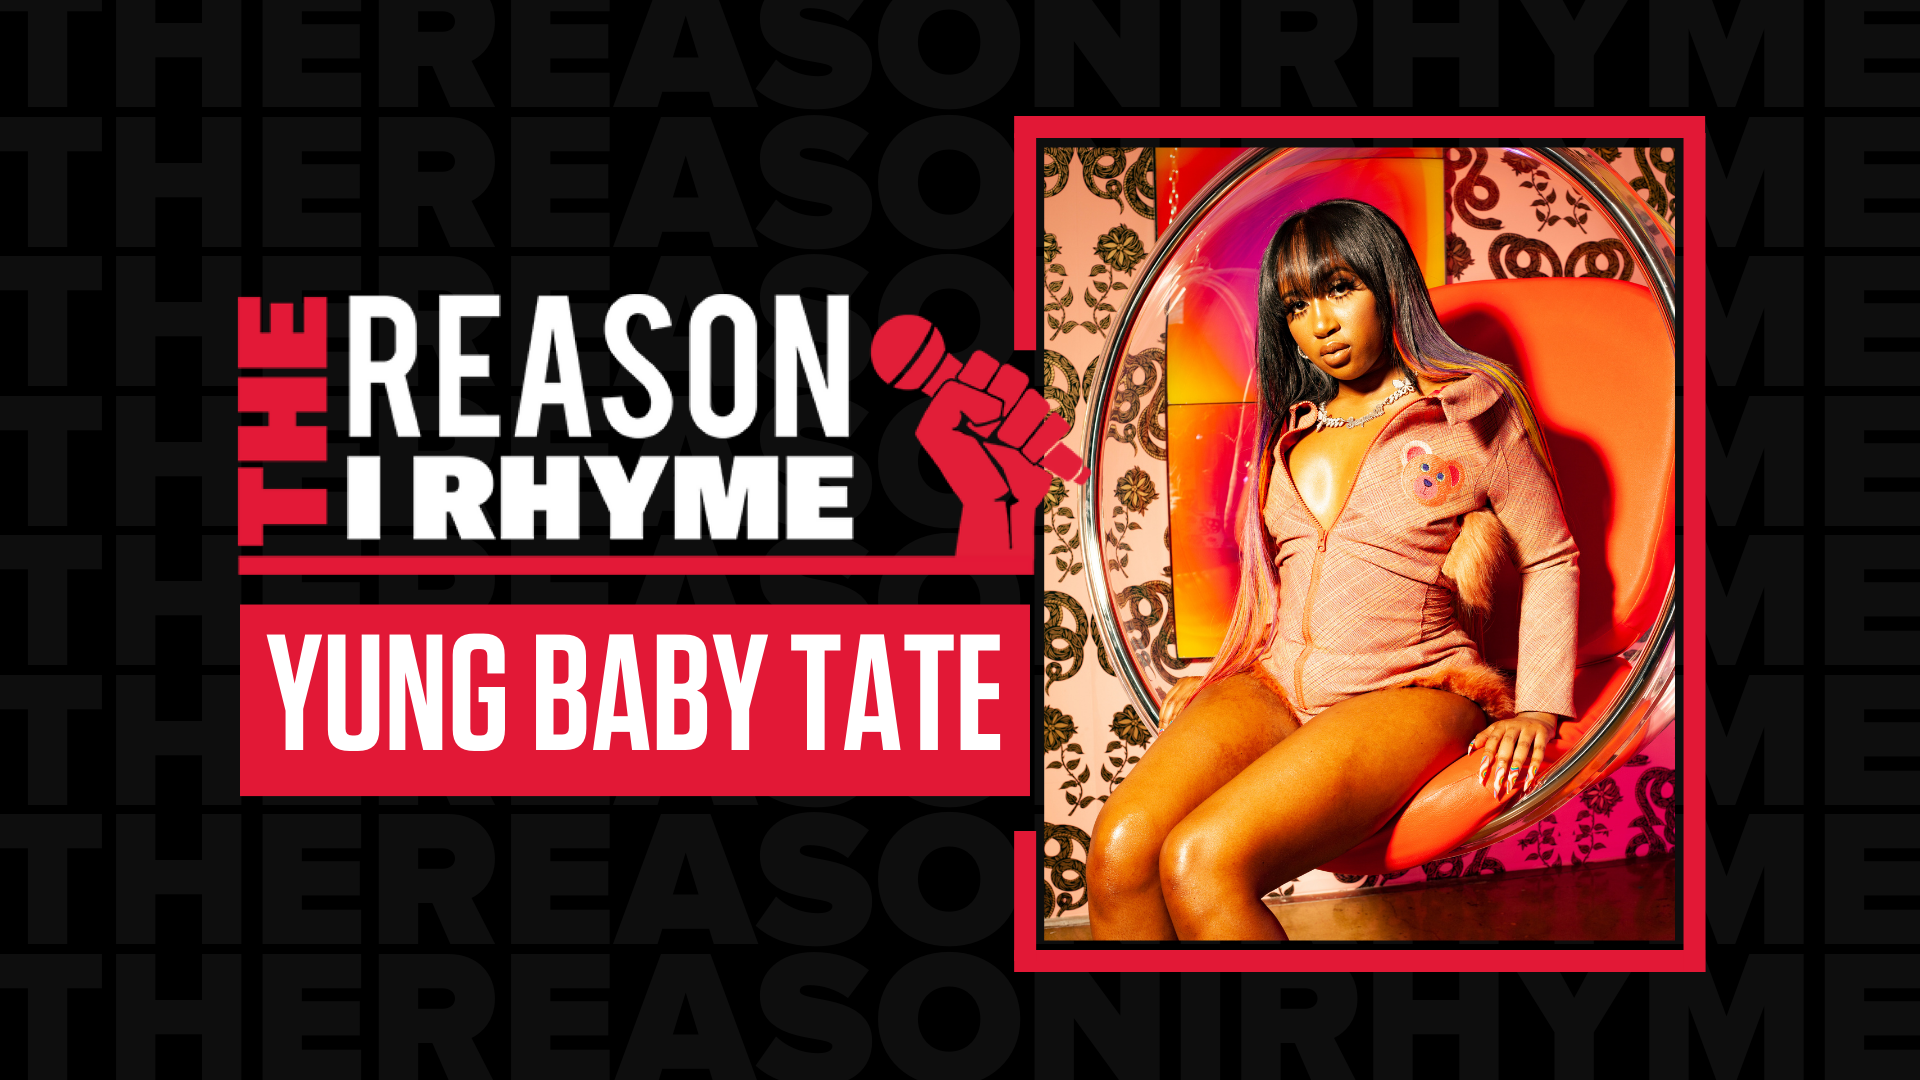 The Reason I Rhyme: Yung Baby Tate